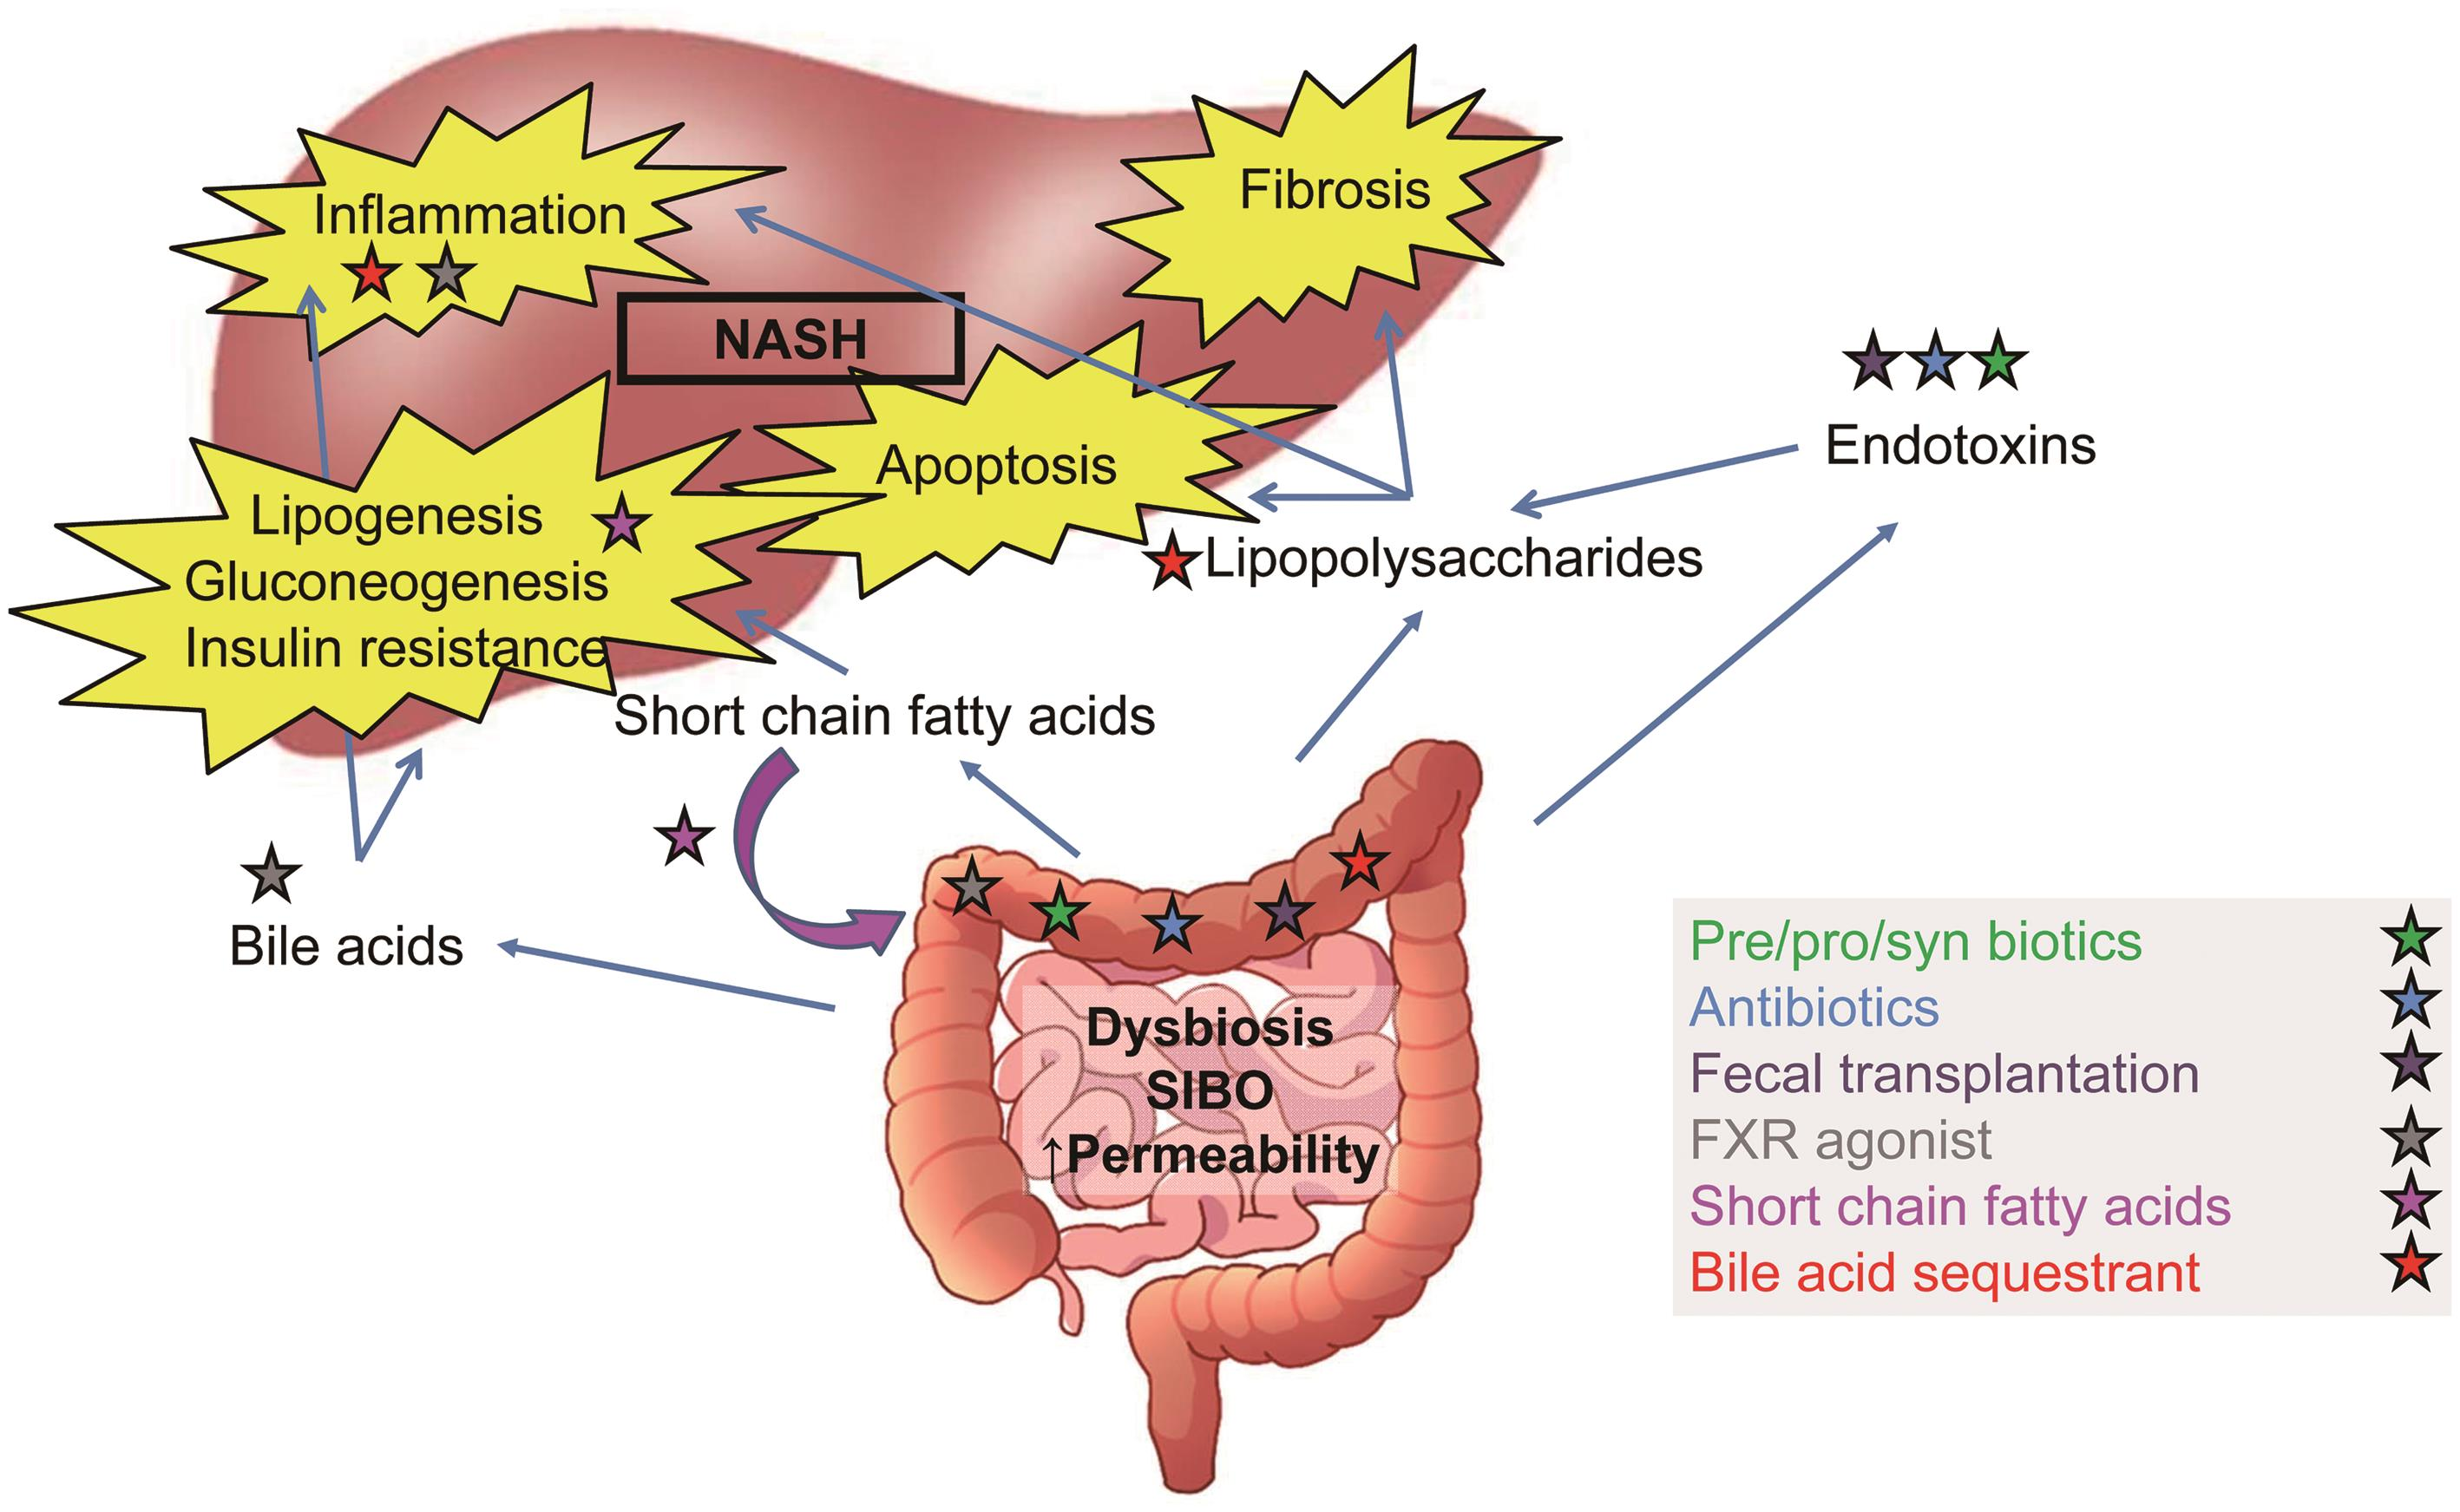 Proposed mechanism of action of treatments for NASH targeting microbiome changes.